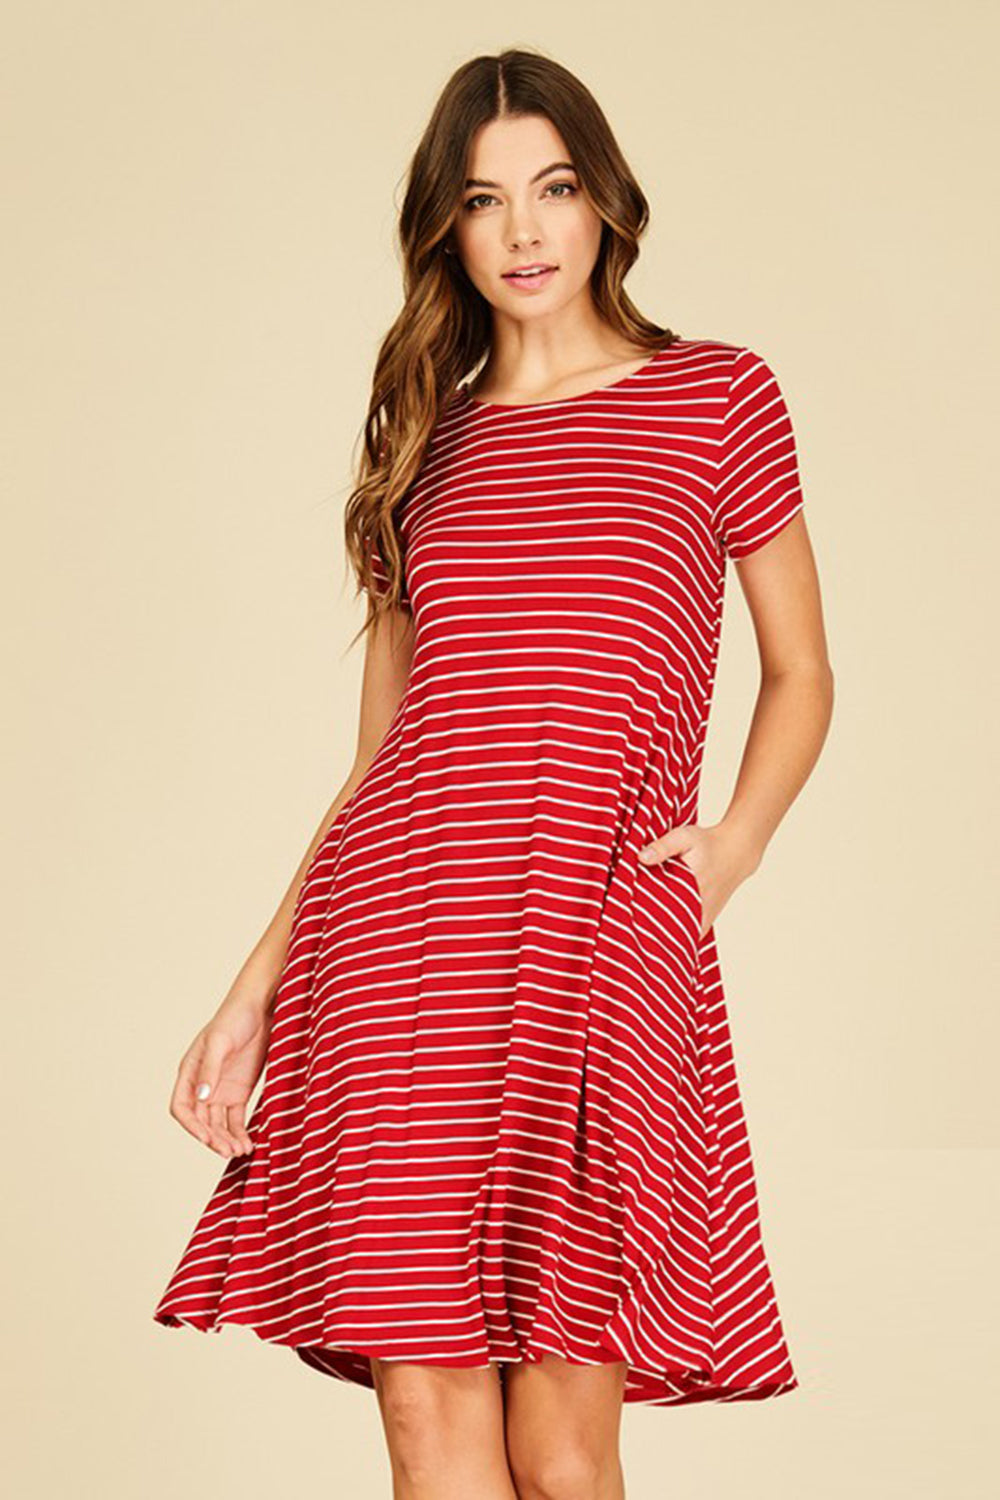 Aynara Fashion Stripe Print Short Sleeve Dress